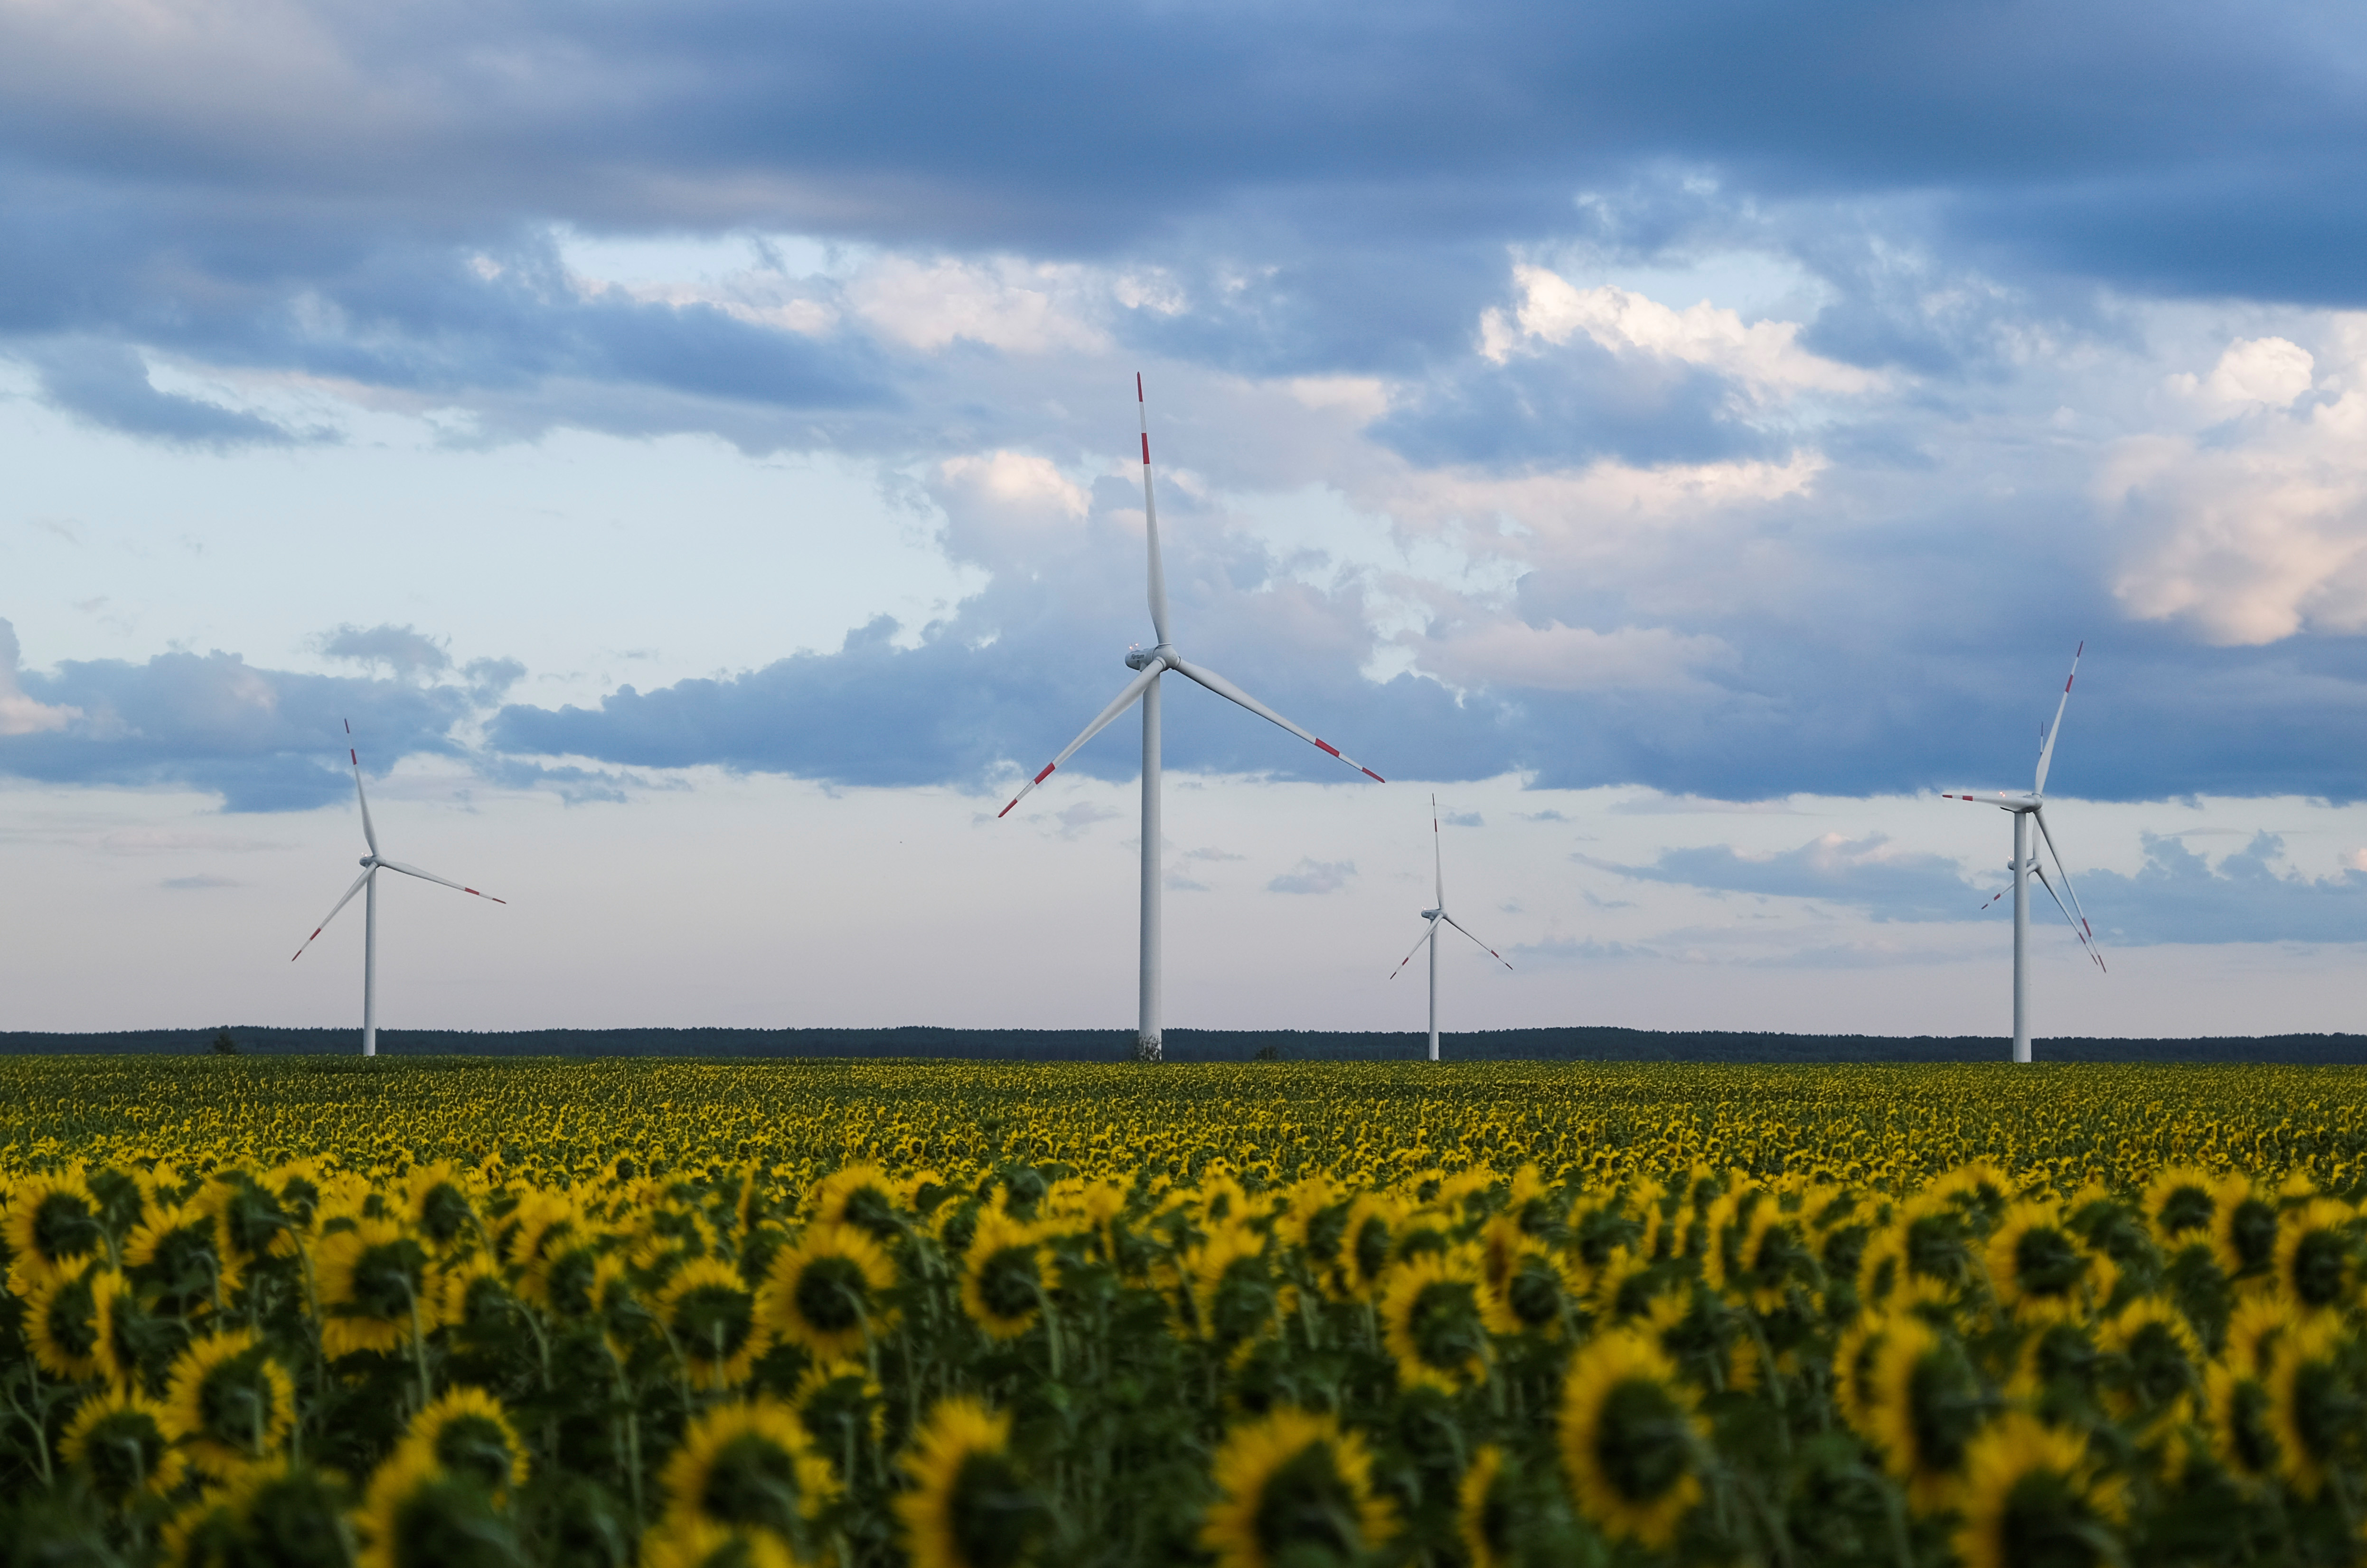 Wind turbines are seen in sunflower field during sunset outside Ulyanovsk, Russia July 20, 2020.